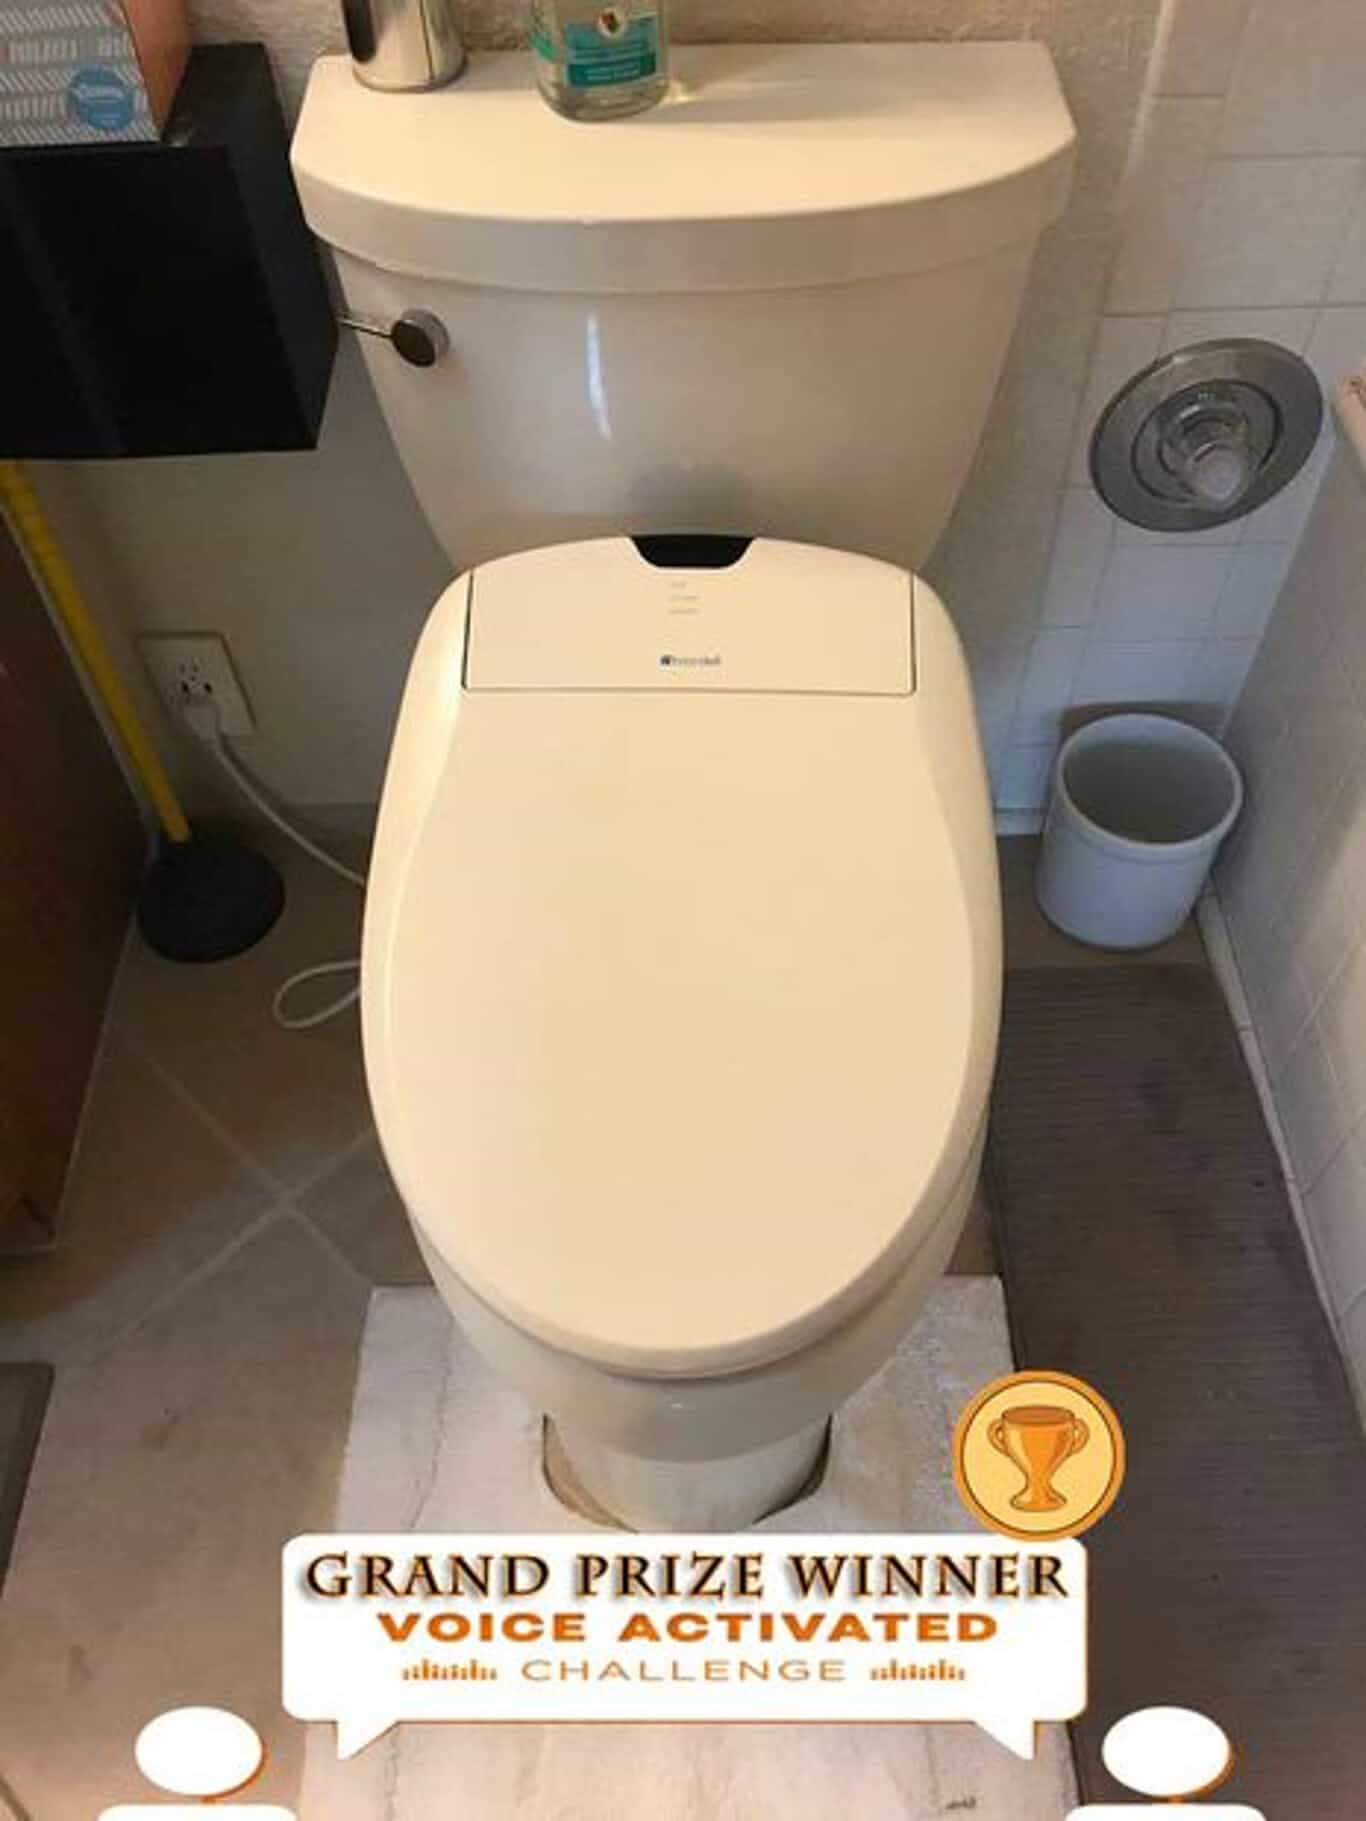 DIY $1,000 Alexa-Enabled Toilet Appears, With Instructions | Android ...